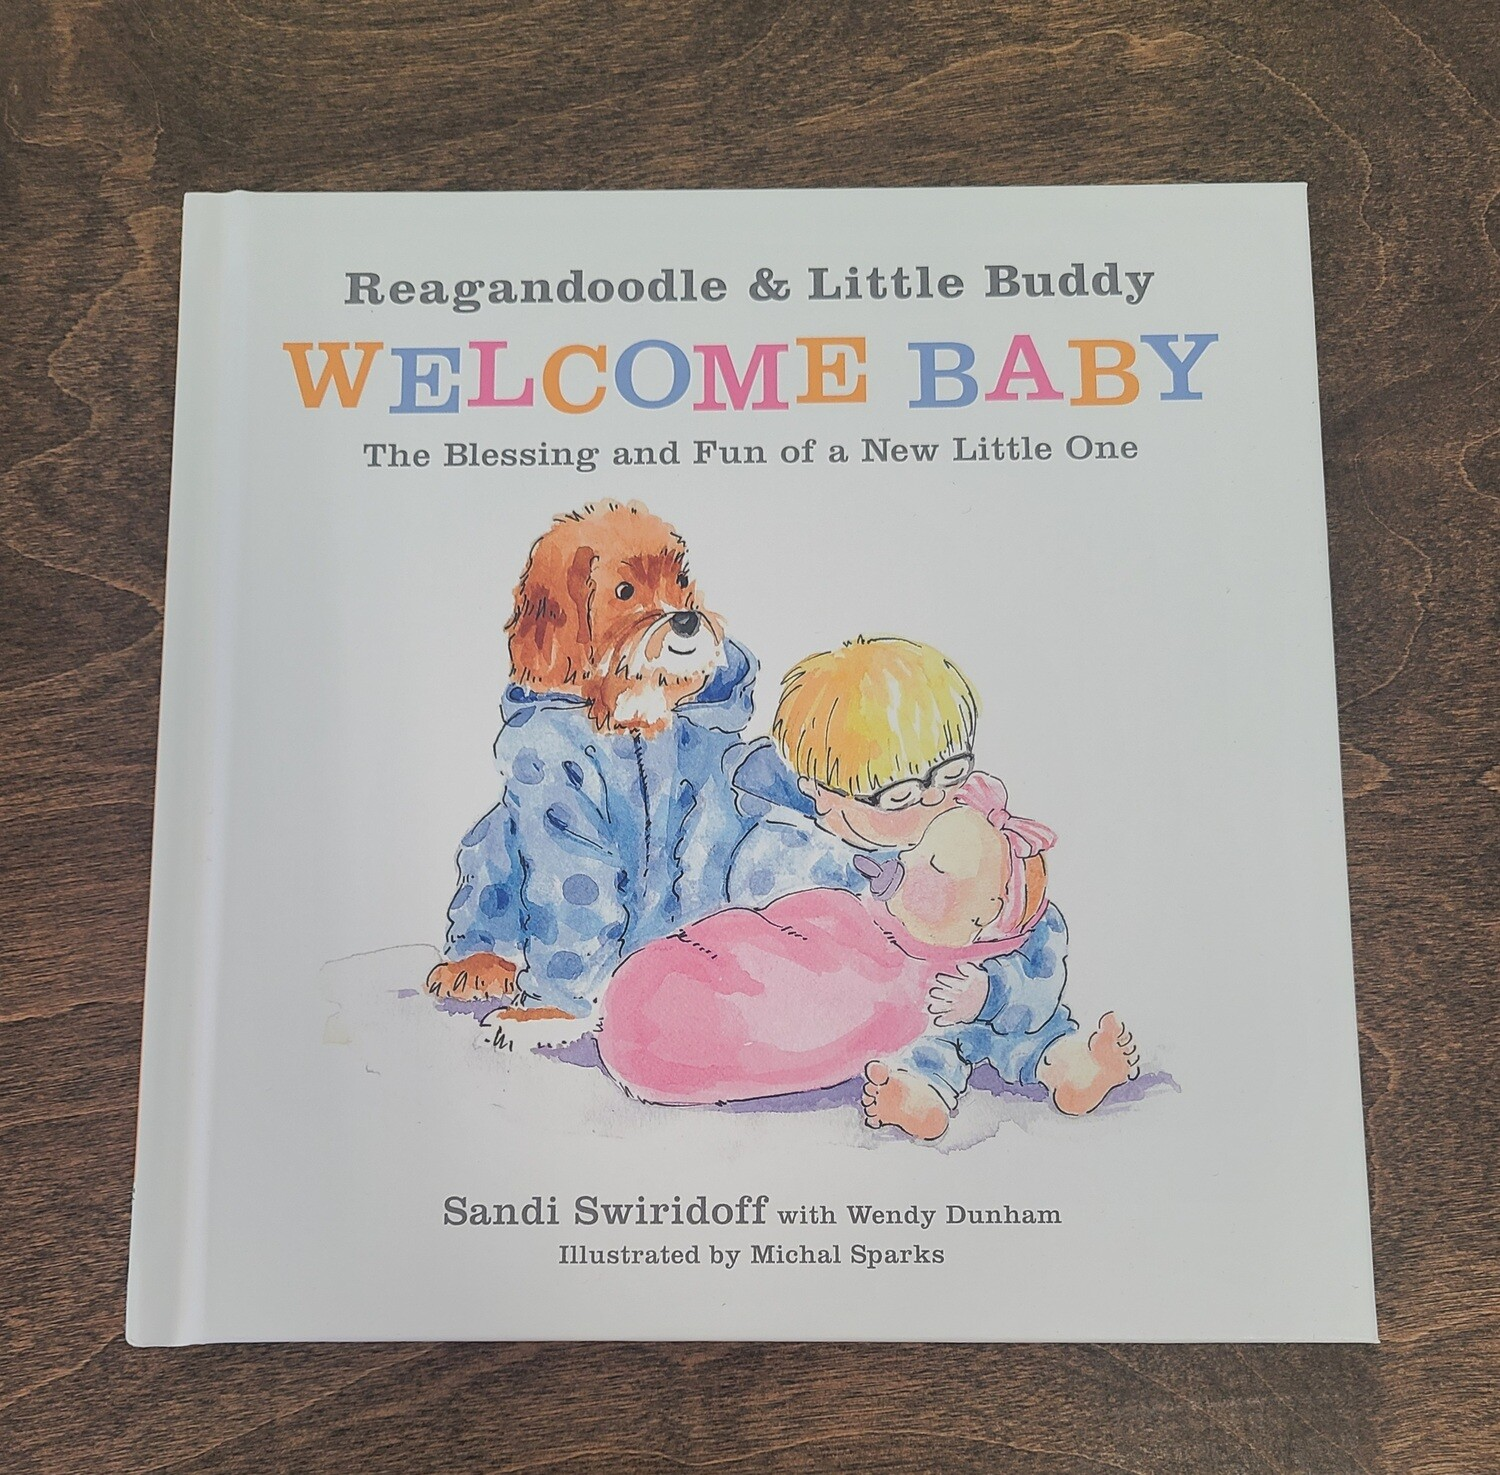 Reagandoodle and Little Buddy Welcome Baby: The Blessing and Fun of a New Little One by Sandi Swiridoff with Wendy Dunham and Michal Sparks